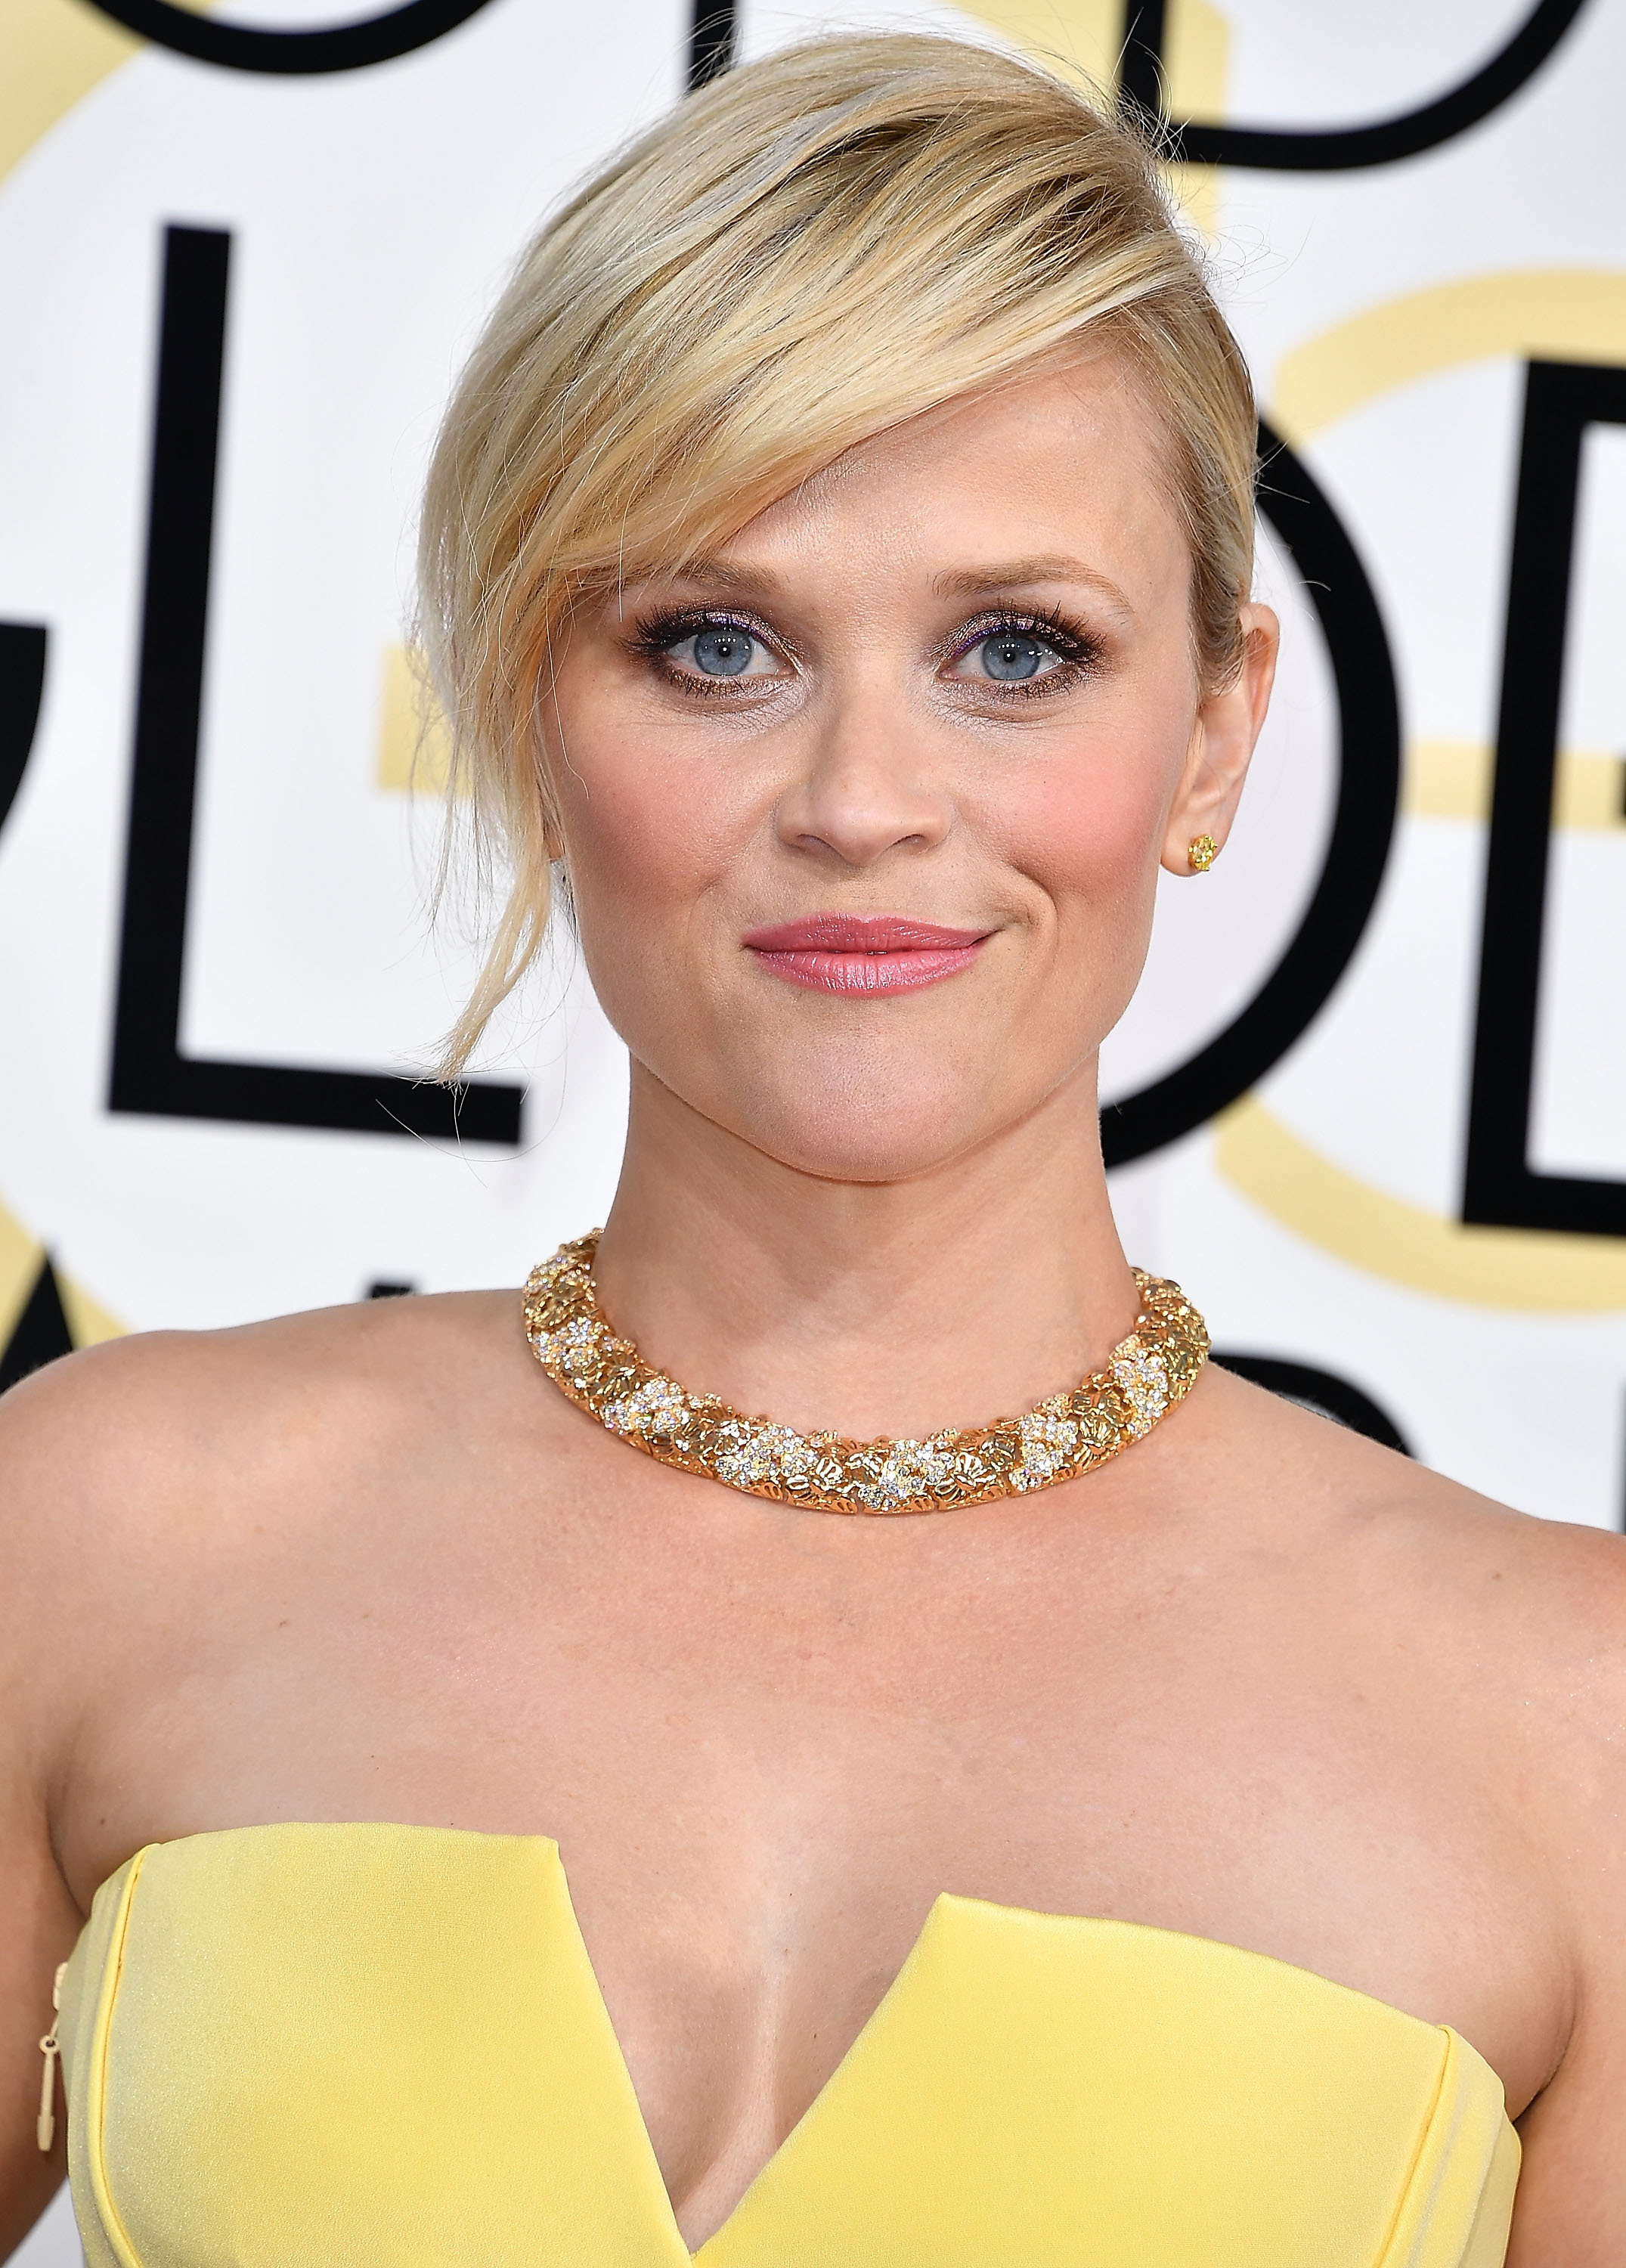 Reese Witherspoon Desktop Wallpaper   HD Wallpapers (High